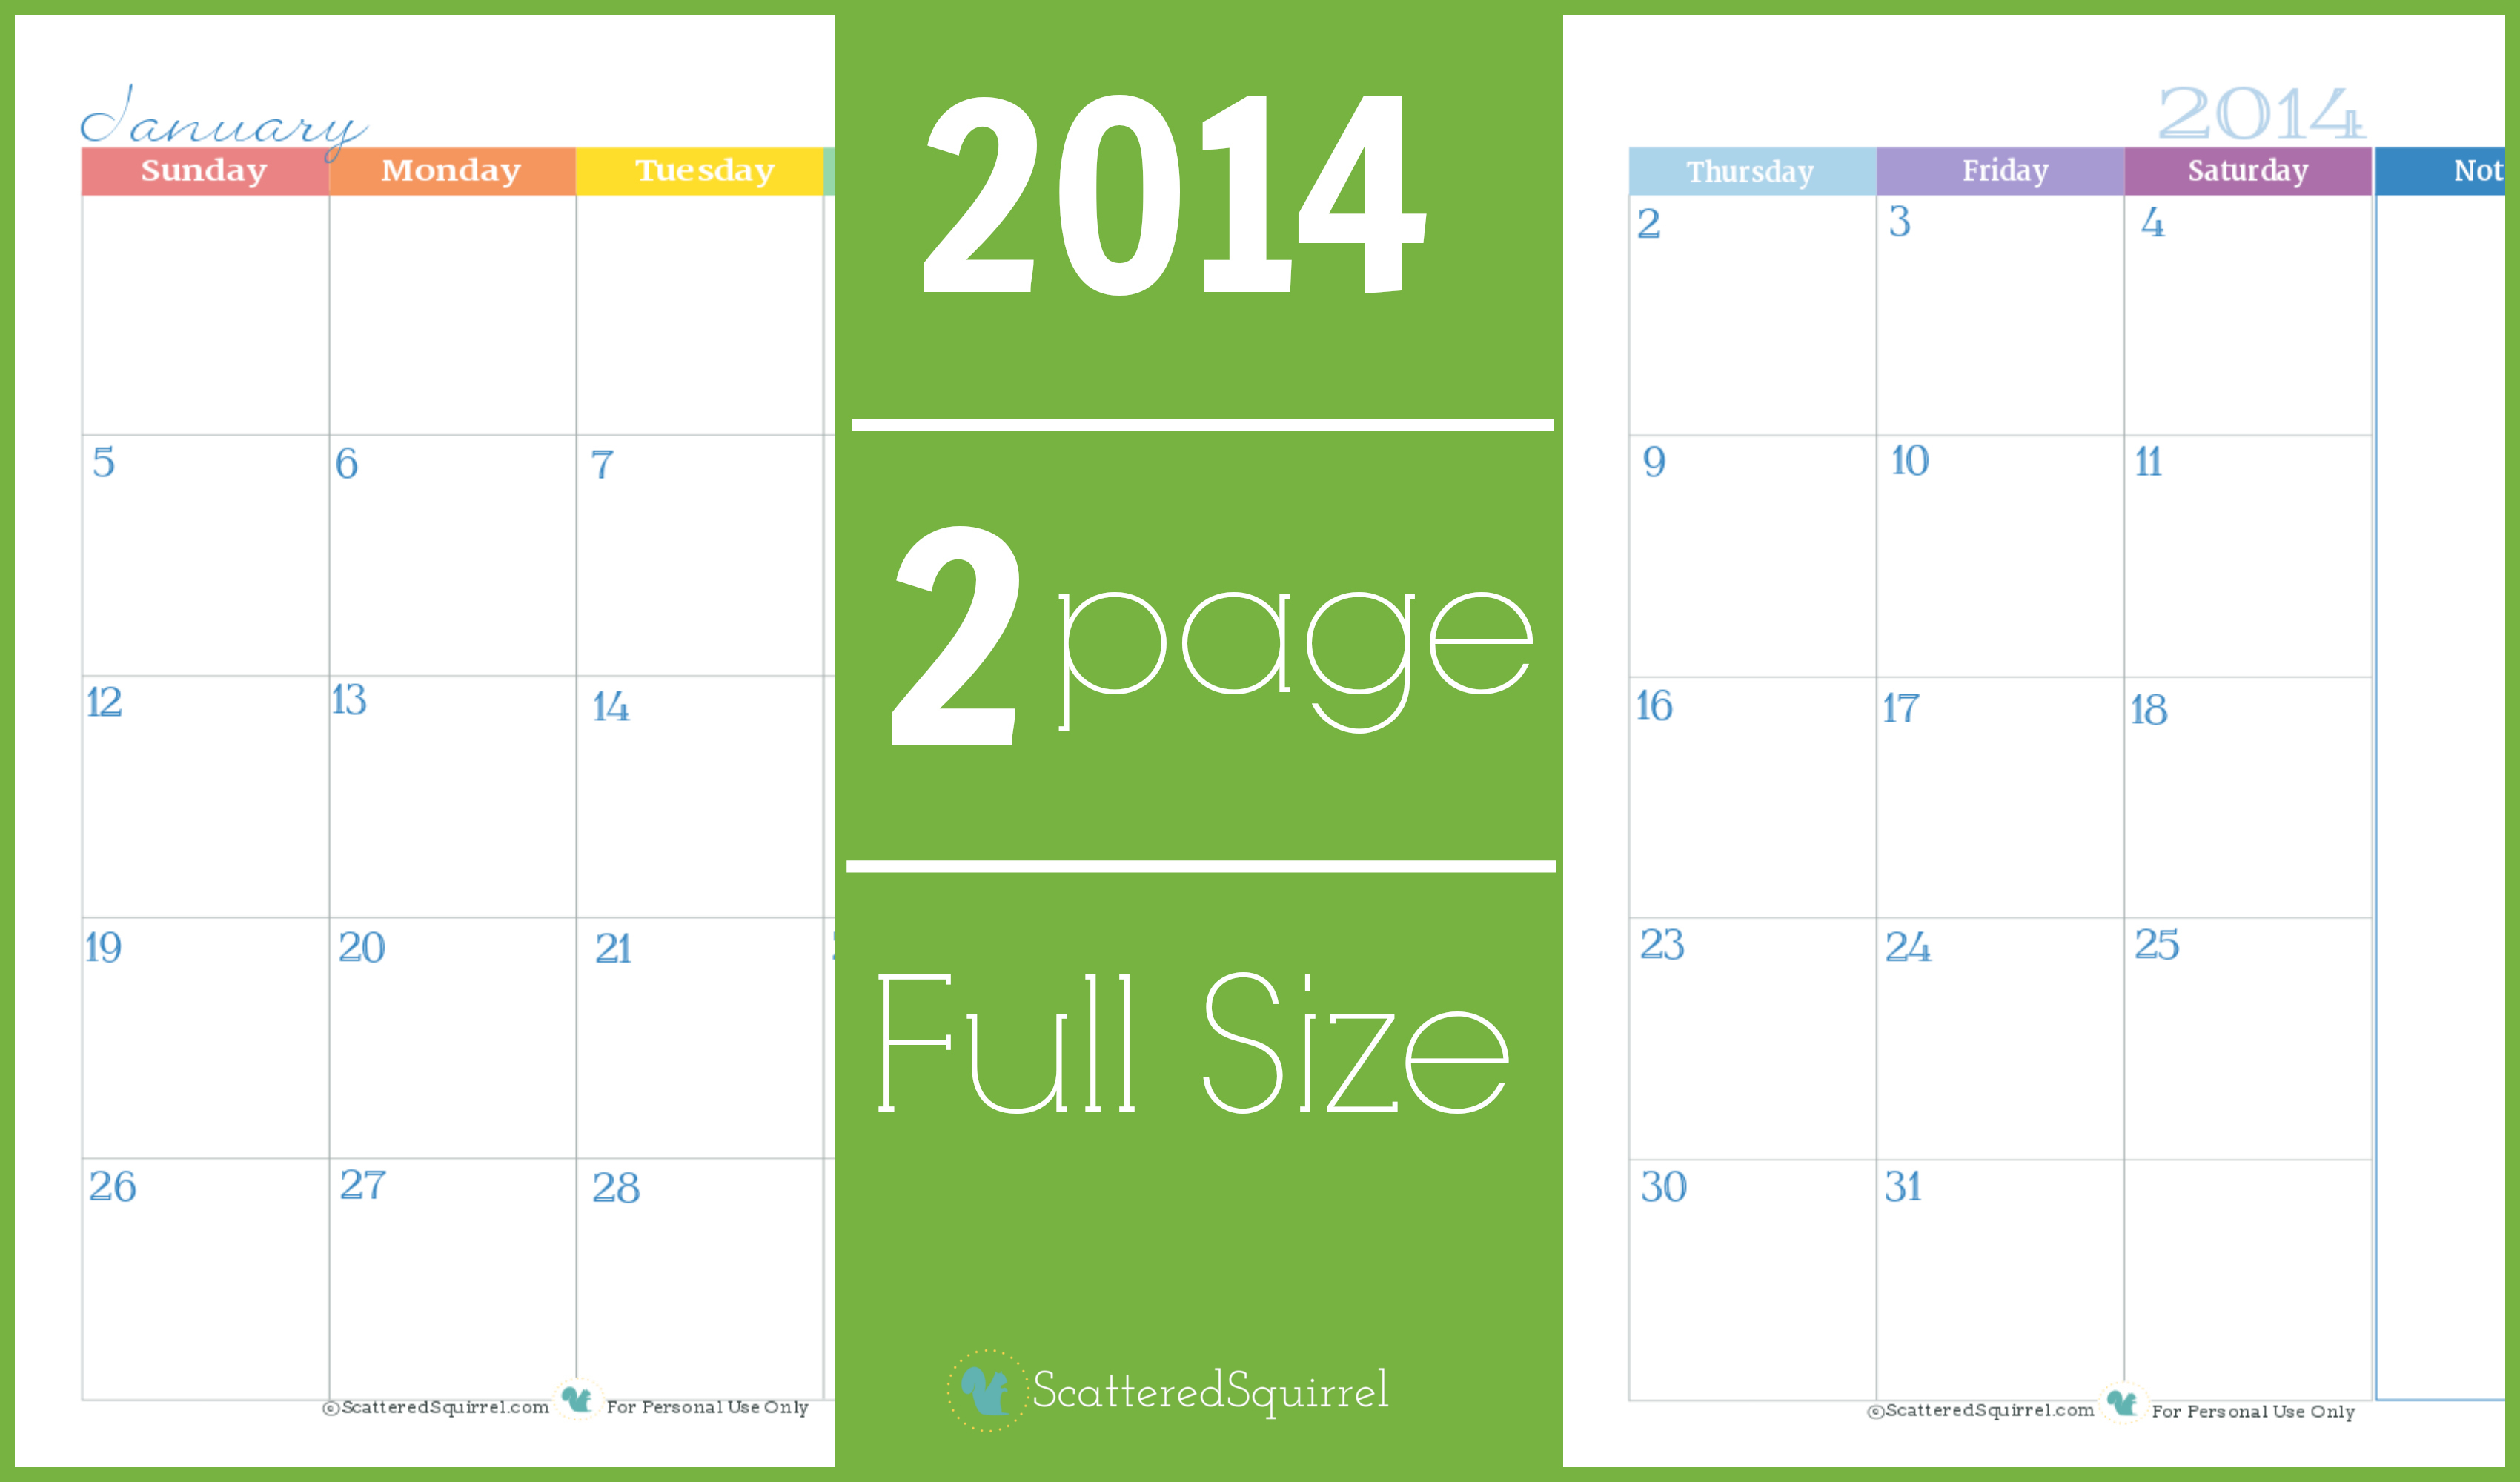 Calendar Ideas Per Month : Calendar two page monthly scattered squirrel